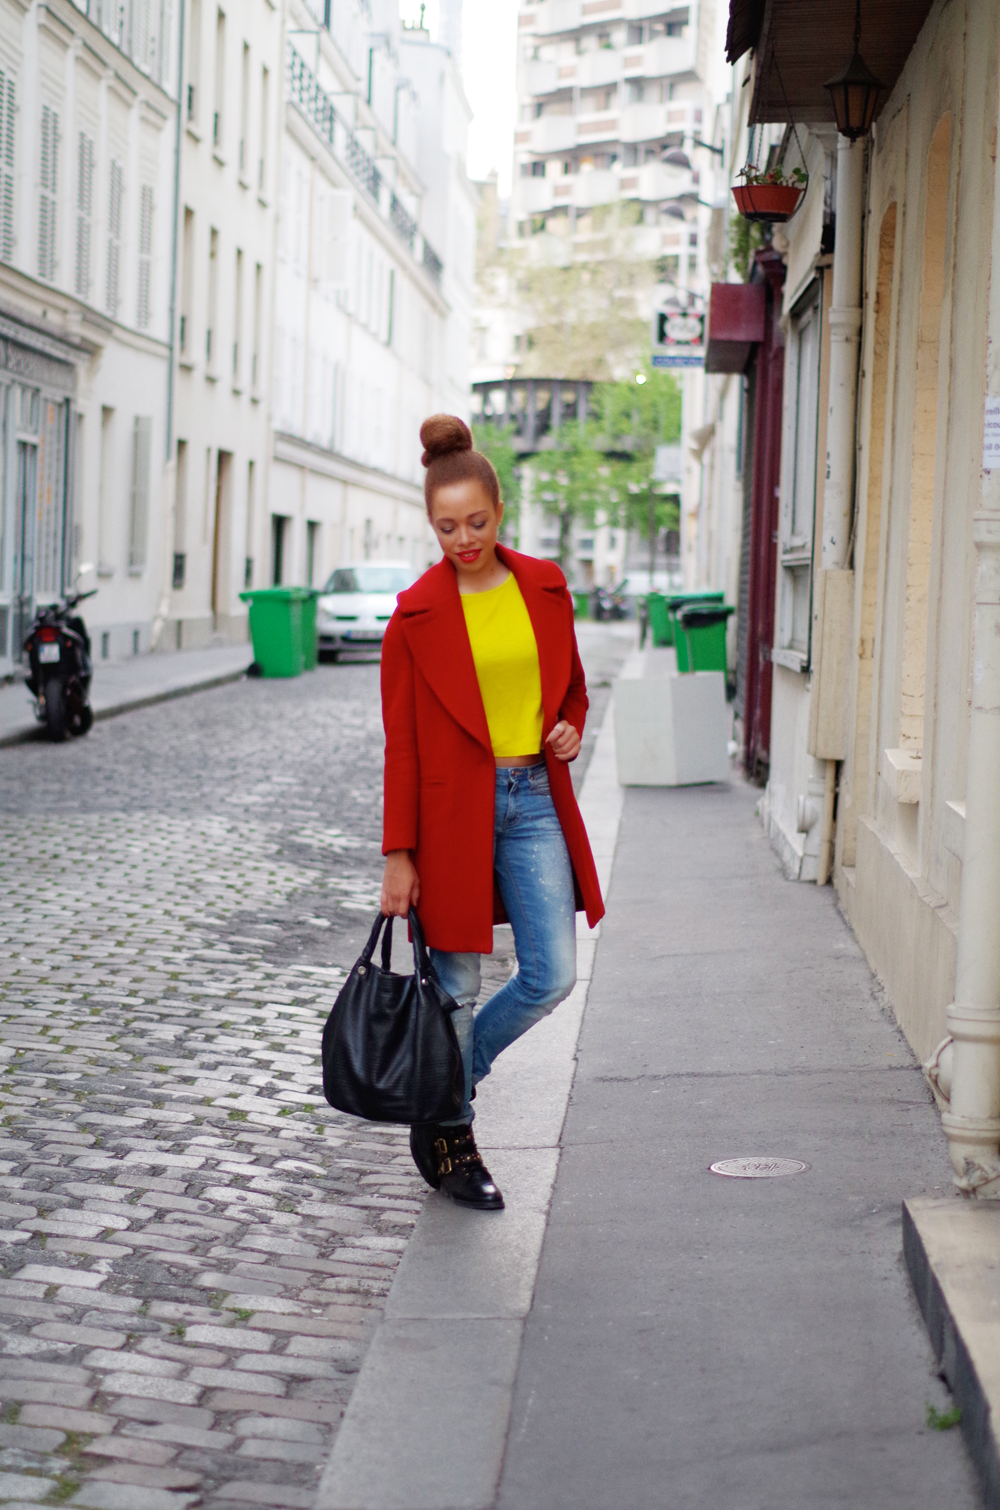 fatimayarie-paris-redcoat-coccinelle-jeans-yellowtop-imgp9997